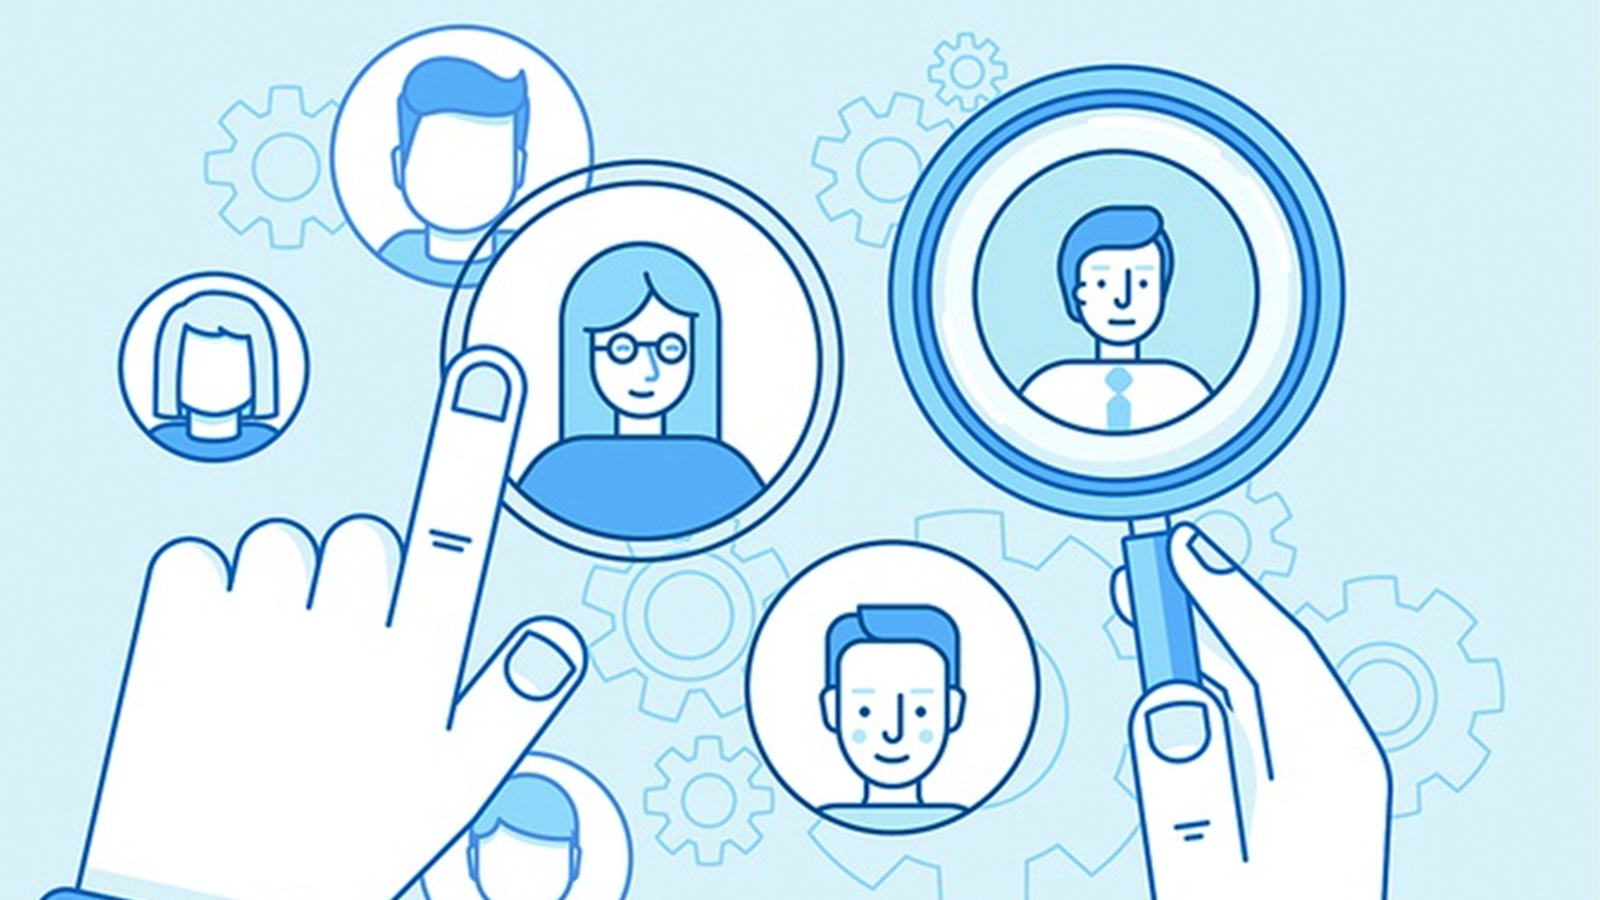 Crowdsourced Testing: What Are the Benefits?